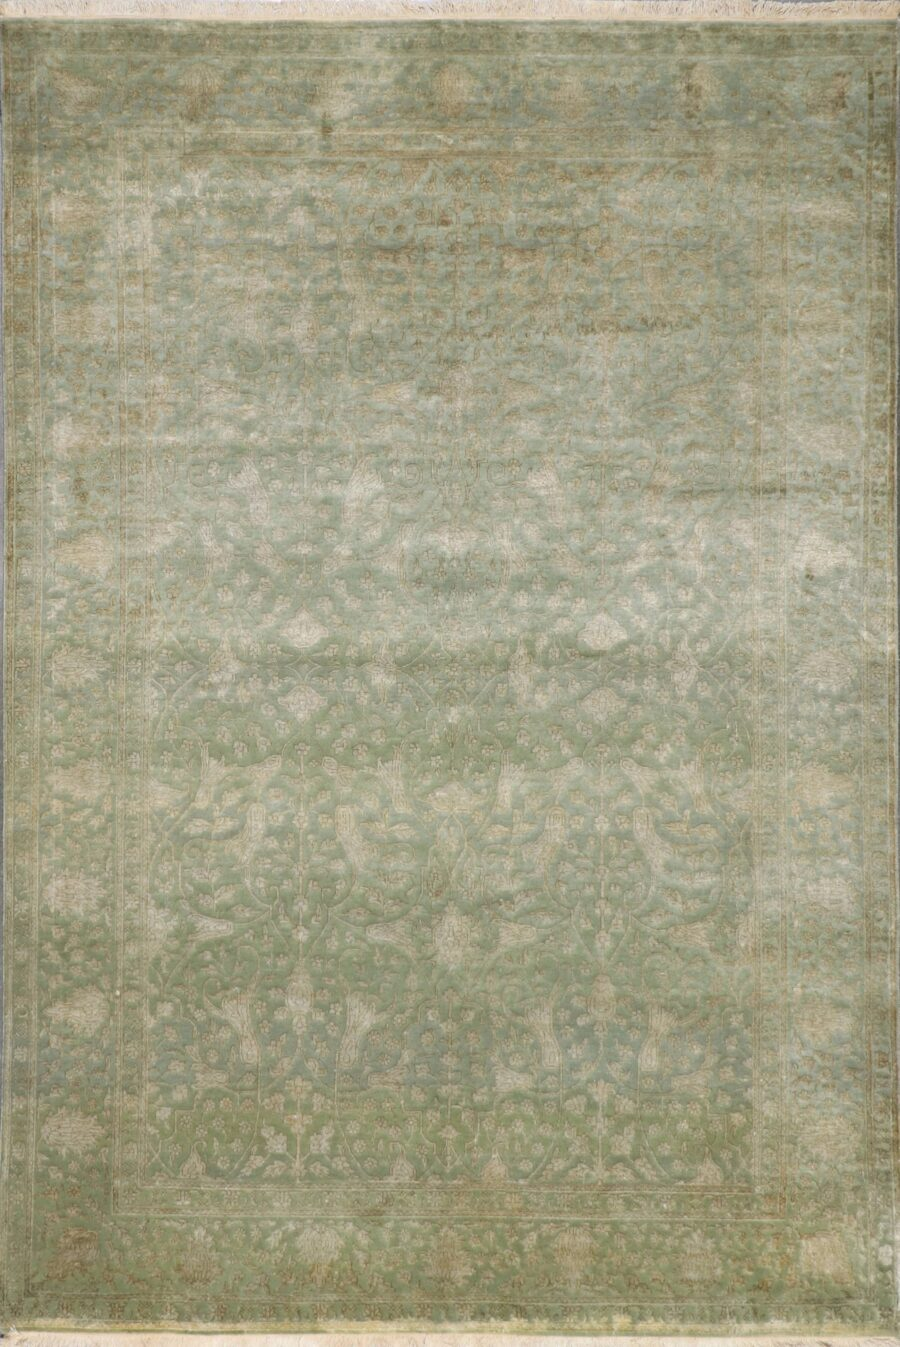 """6'x8'9"""" Transitional Green Wool & Silk Hand-Knotted Rug - Direct Rug Import 